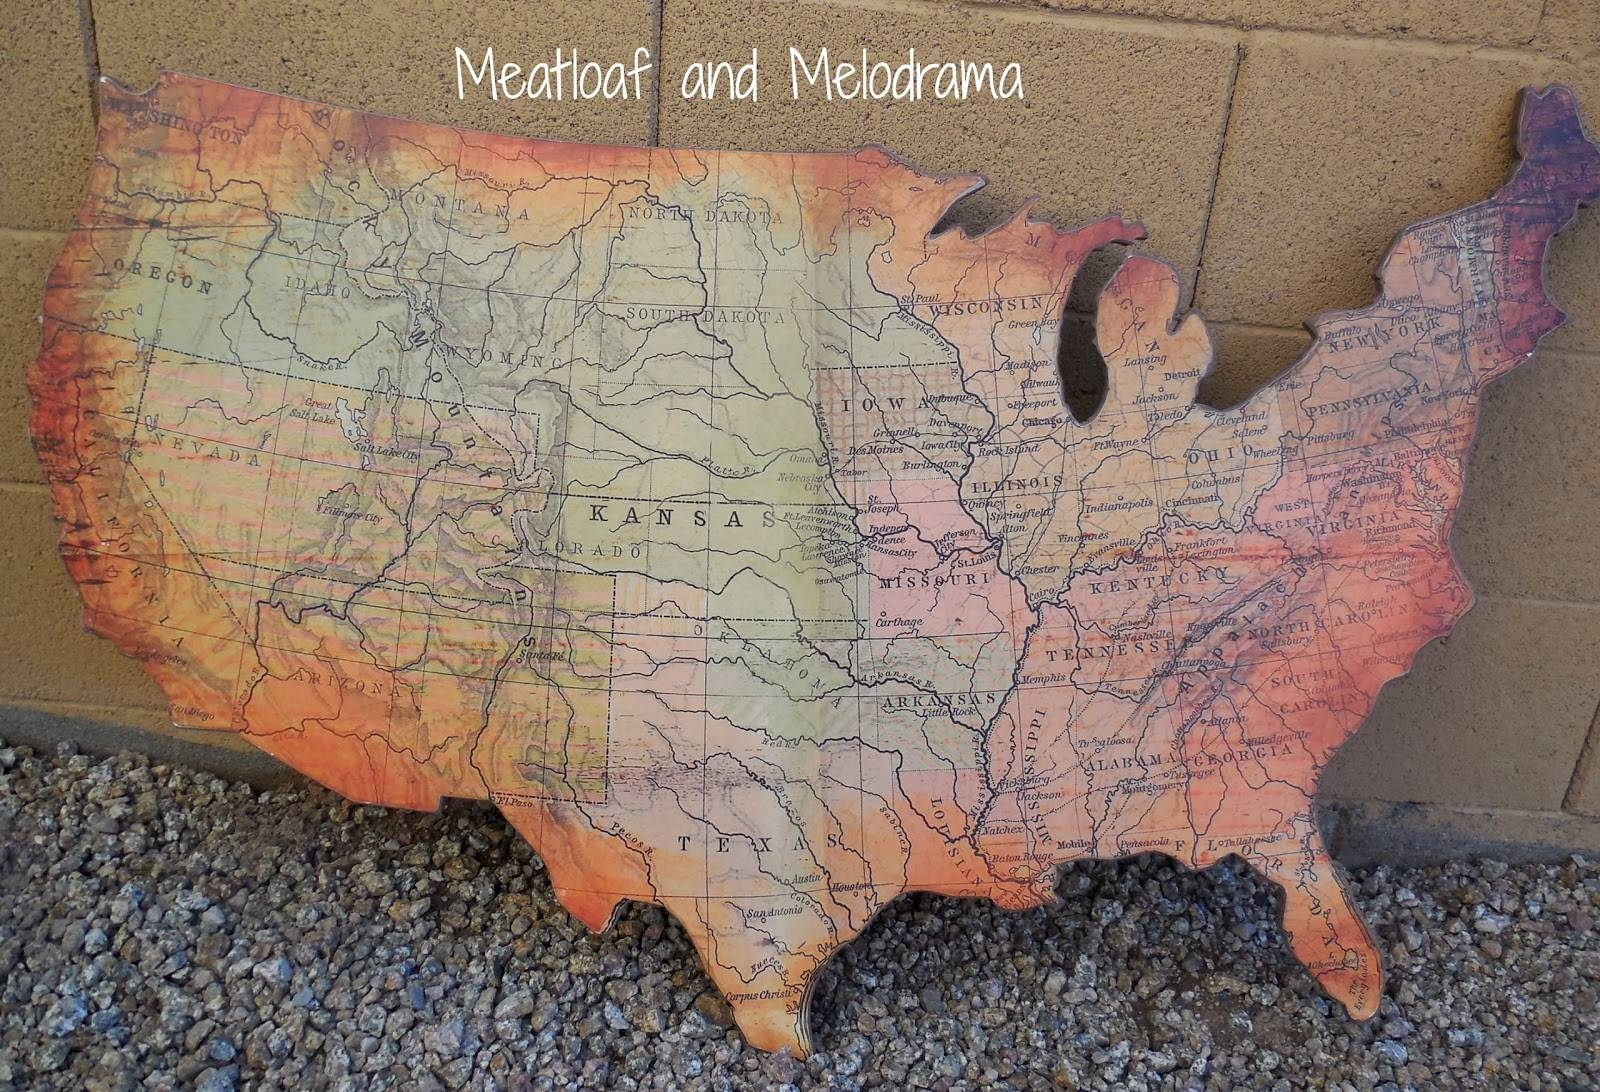 Rustic Wooden Wall Art – Meatloaf And Melodrama With Regard To Most Recently Released Us Map Wall Art (Gallery 6 of 20)